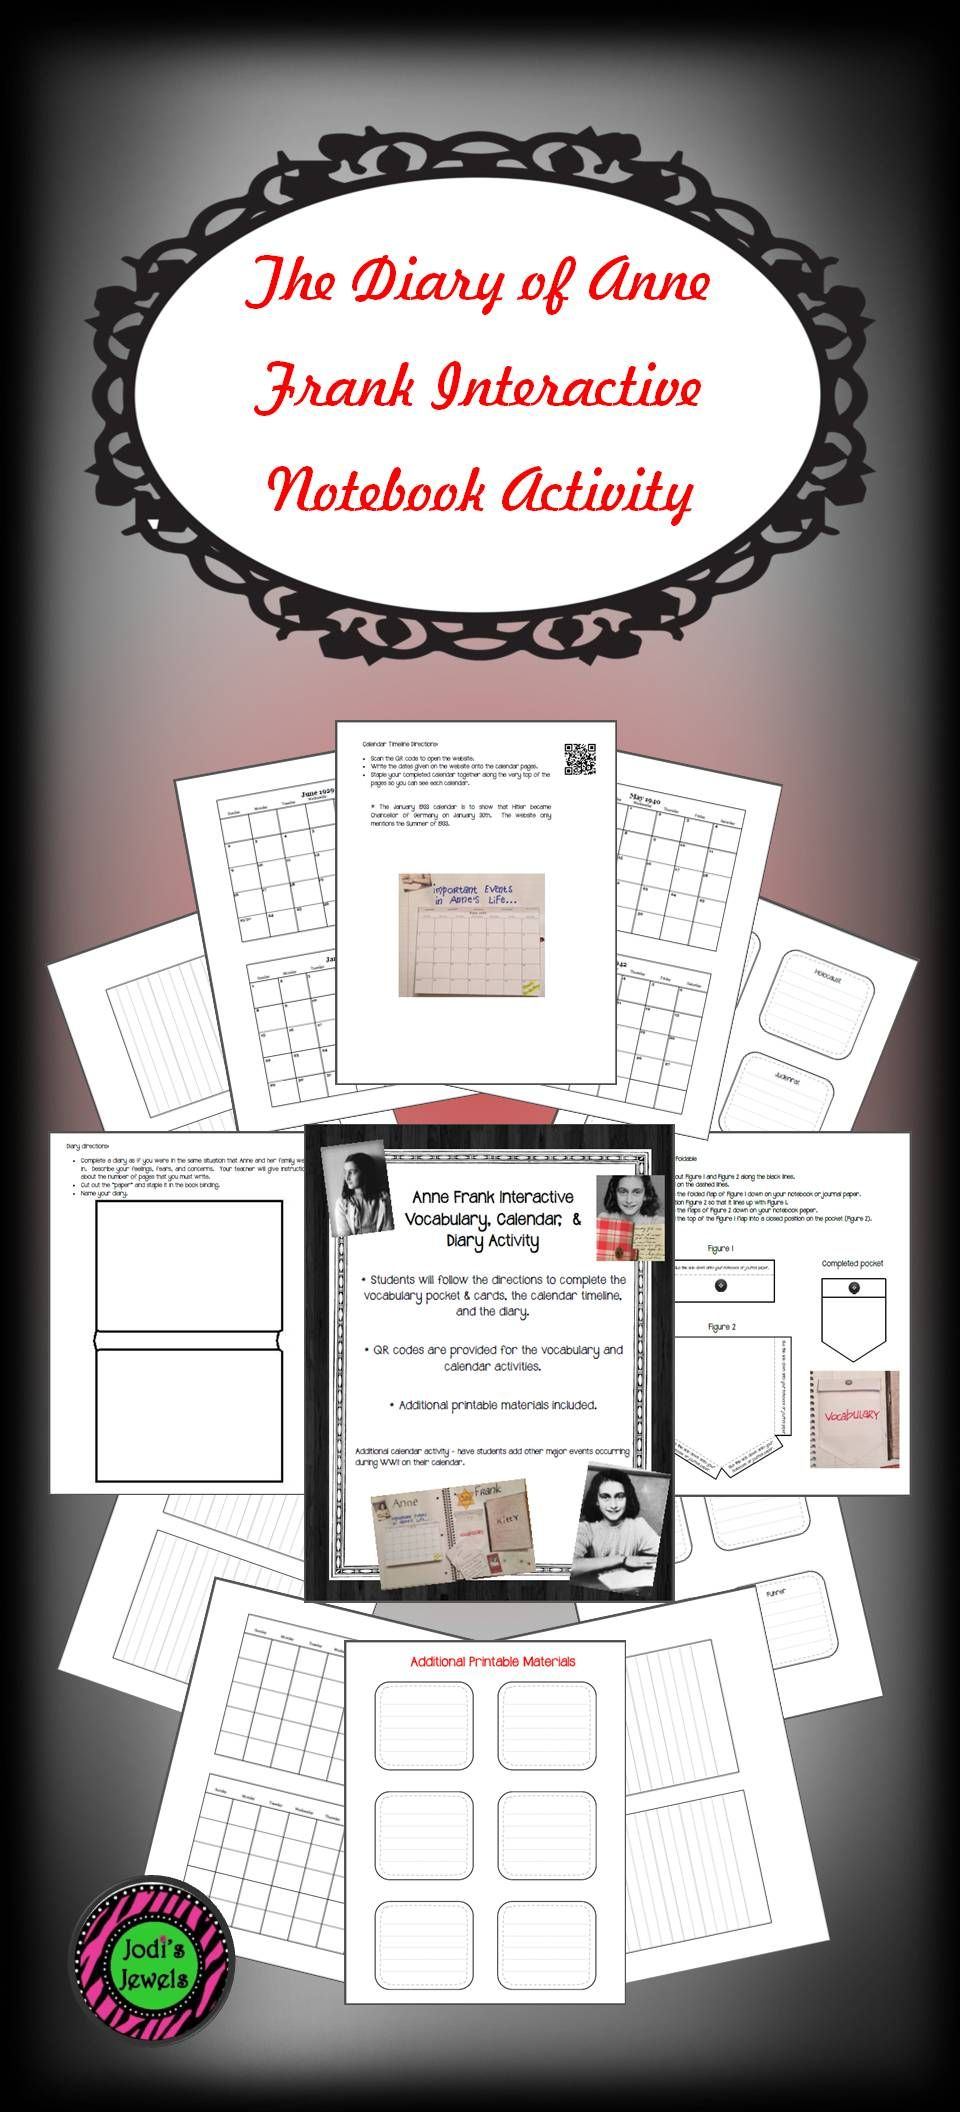 Anne Frank Interactive Vocabulary Calendar And Diary Activity